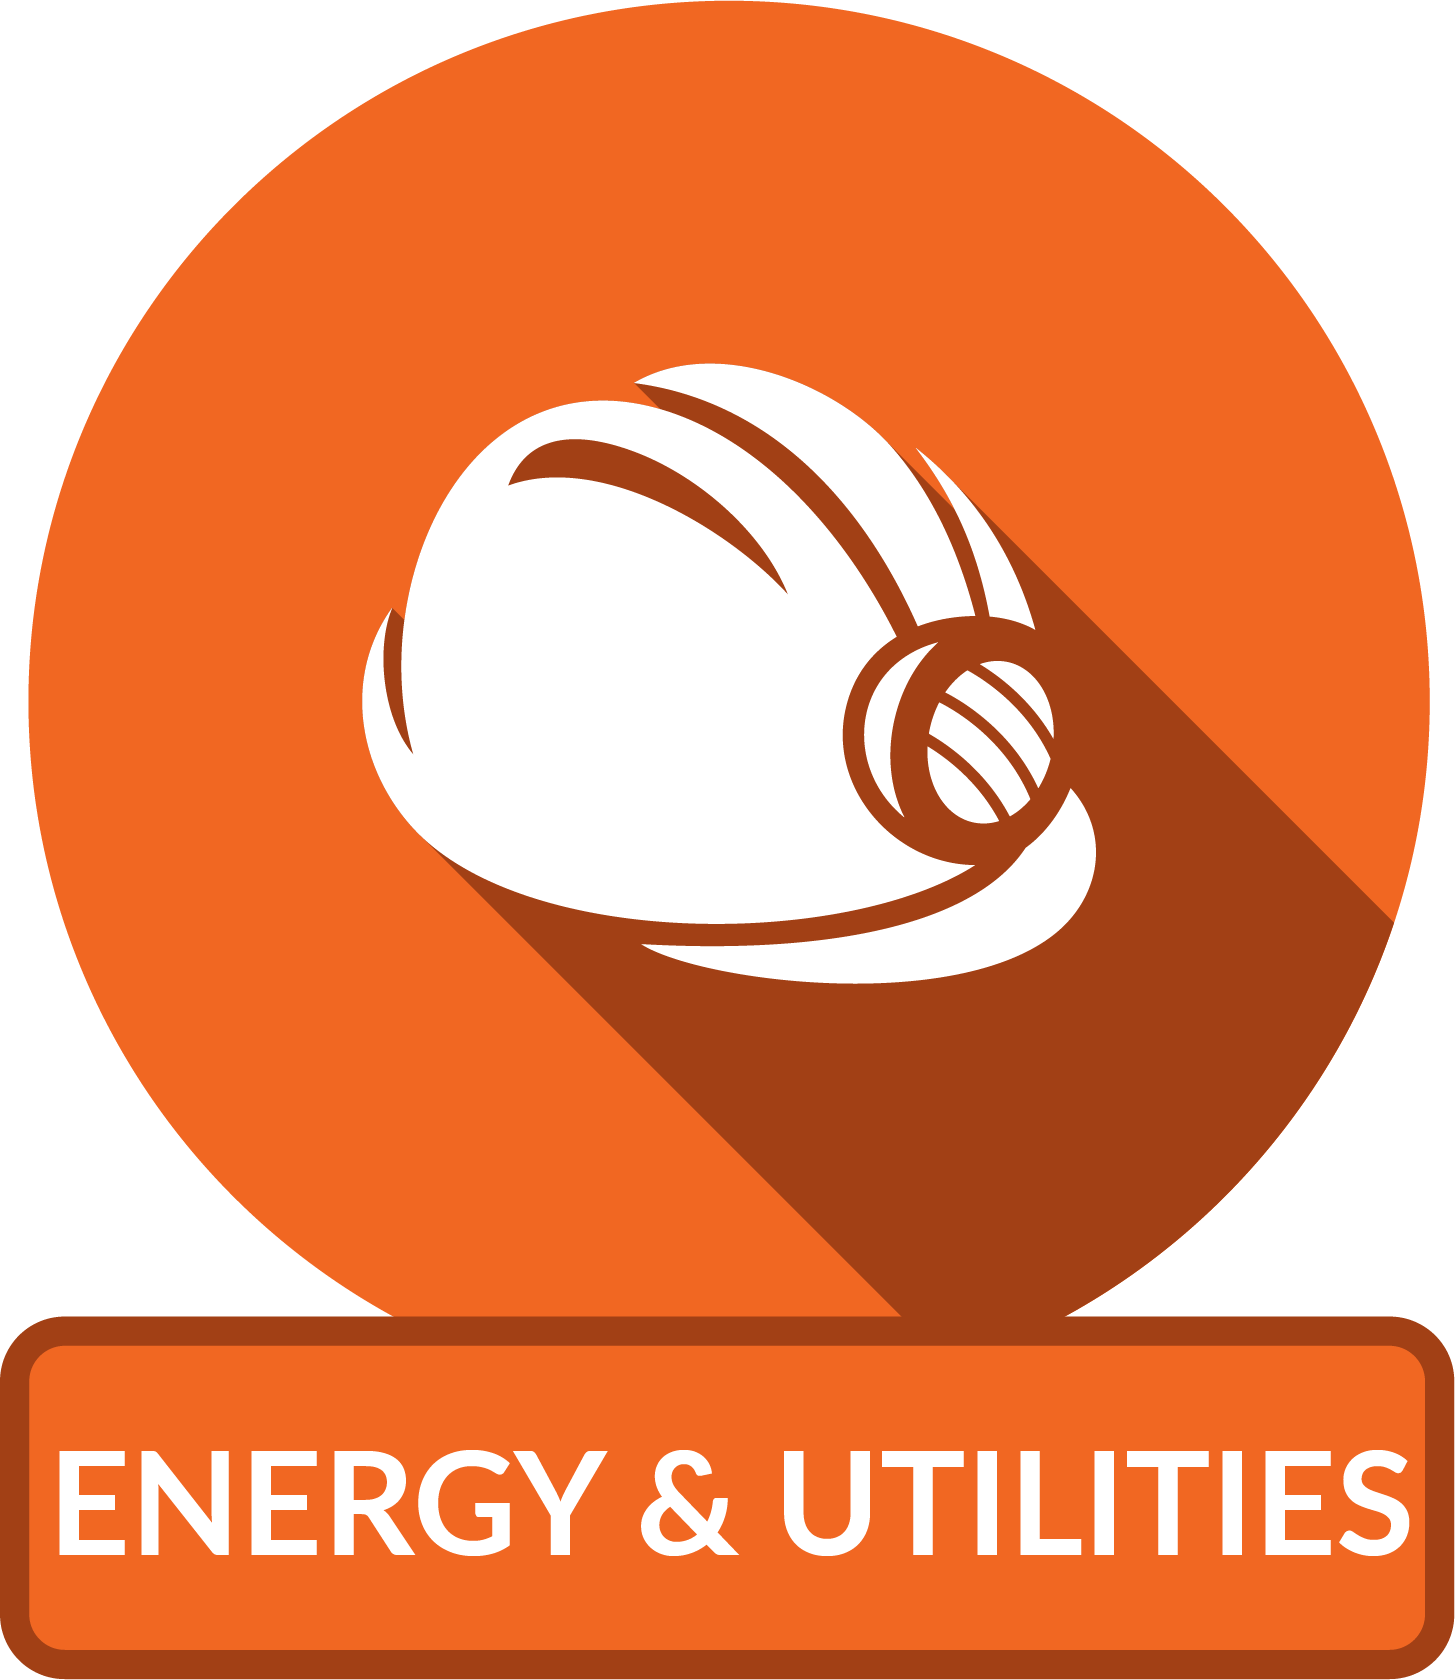 Energy & Utilities.png